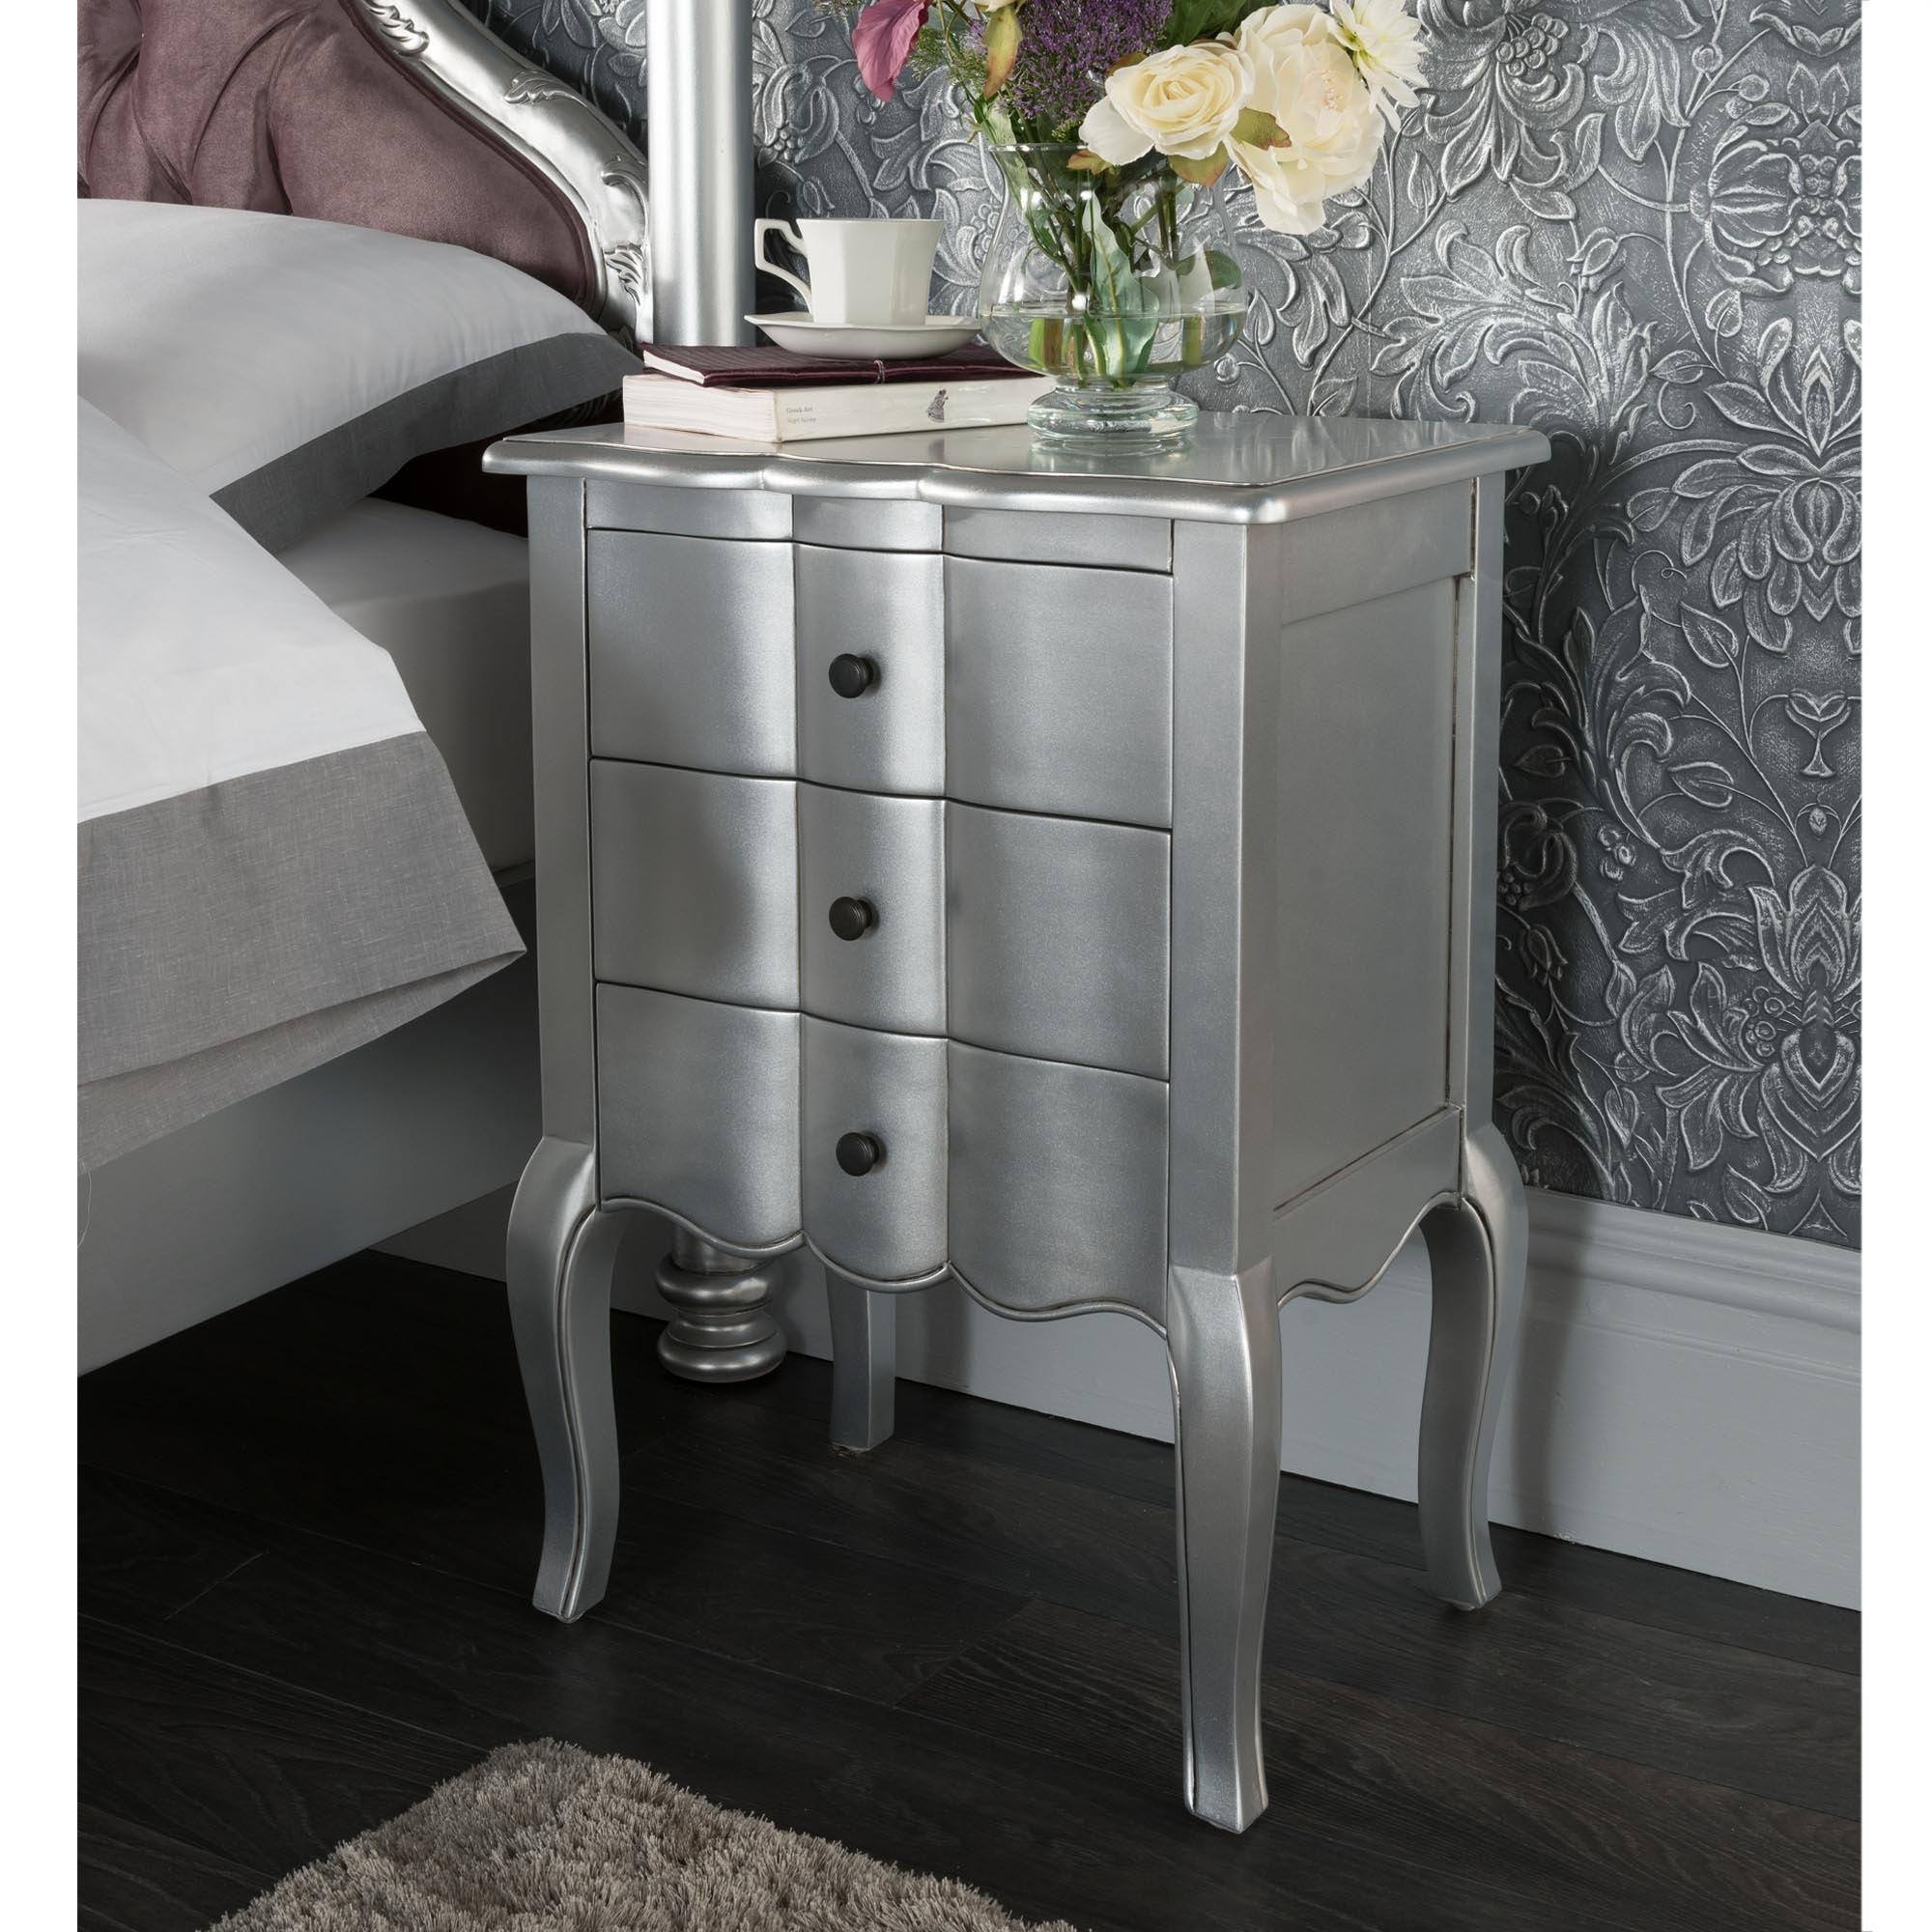 Silver French Bedside Tables | Buy French Silver Bedside Tables